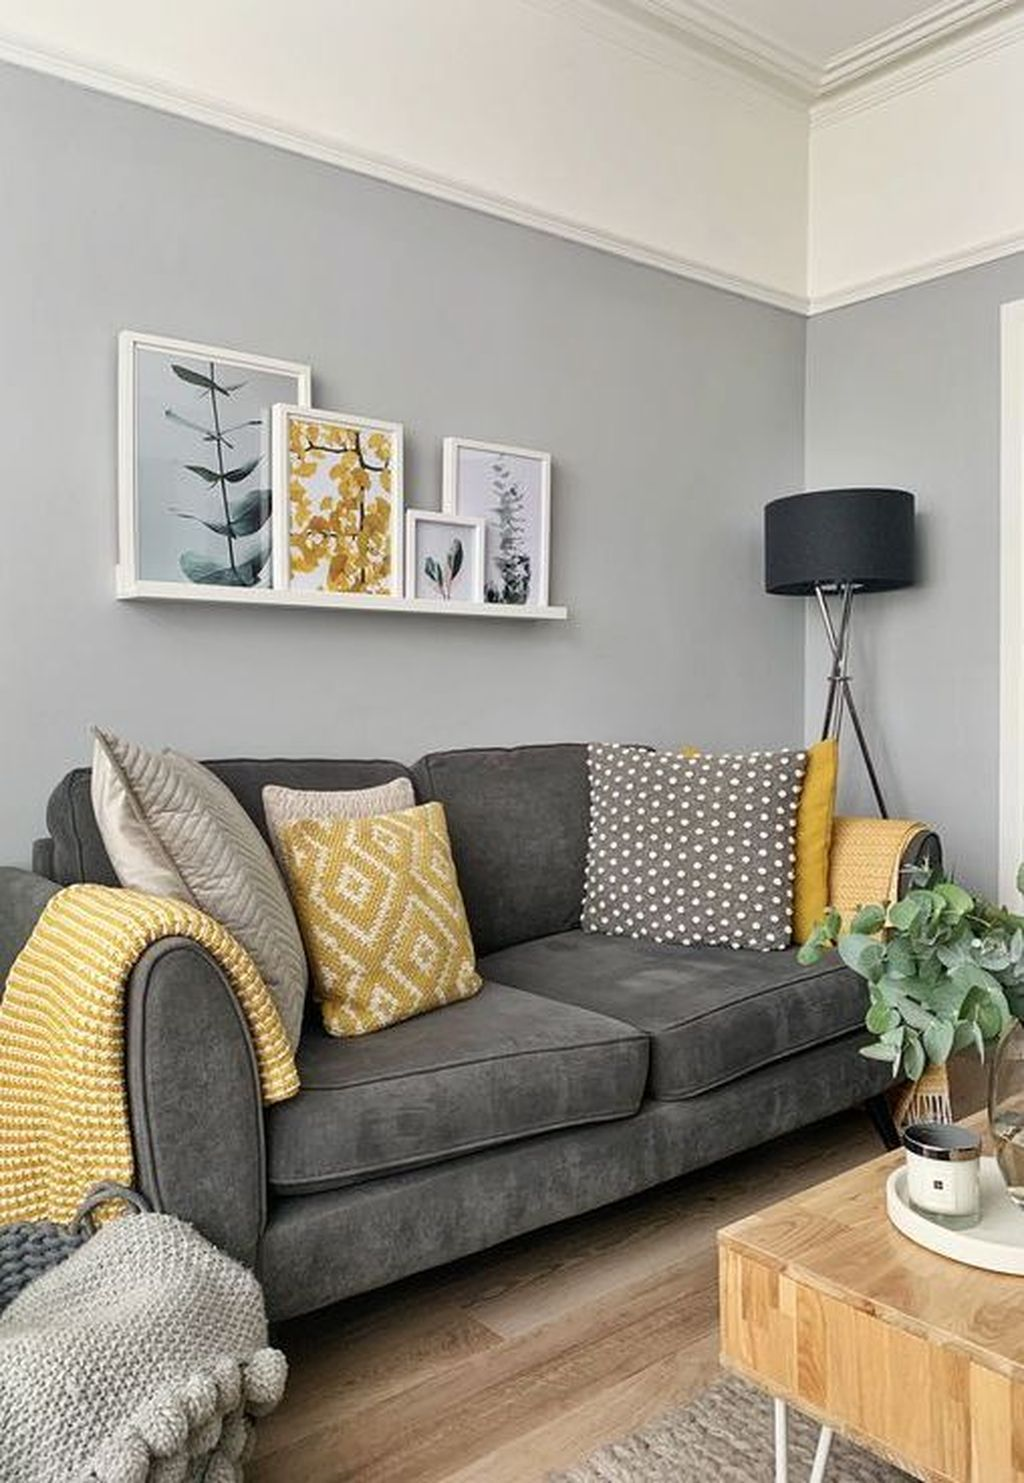 32 Charming Living Room Decorating Ideas With Grey Color To